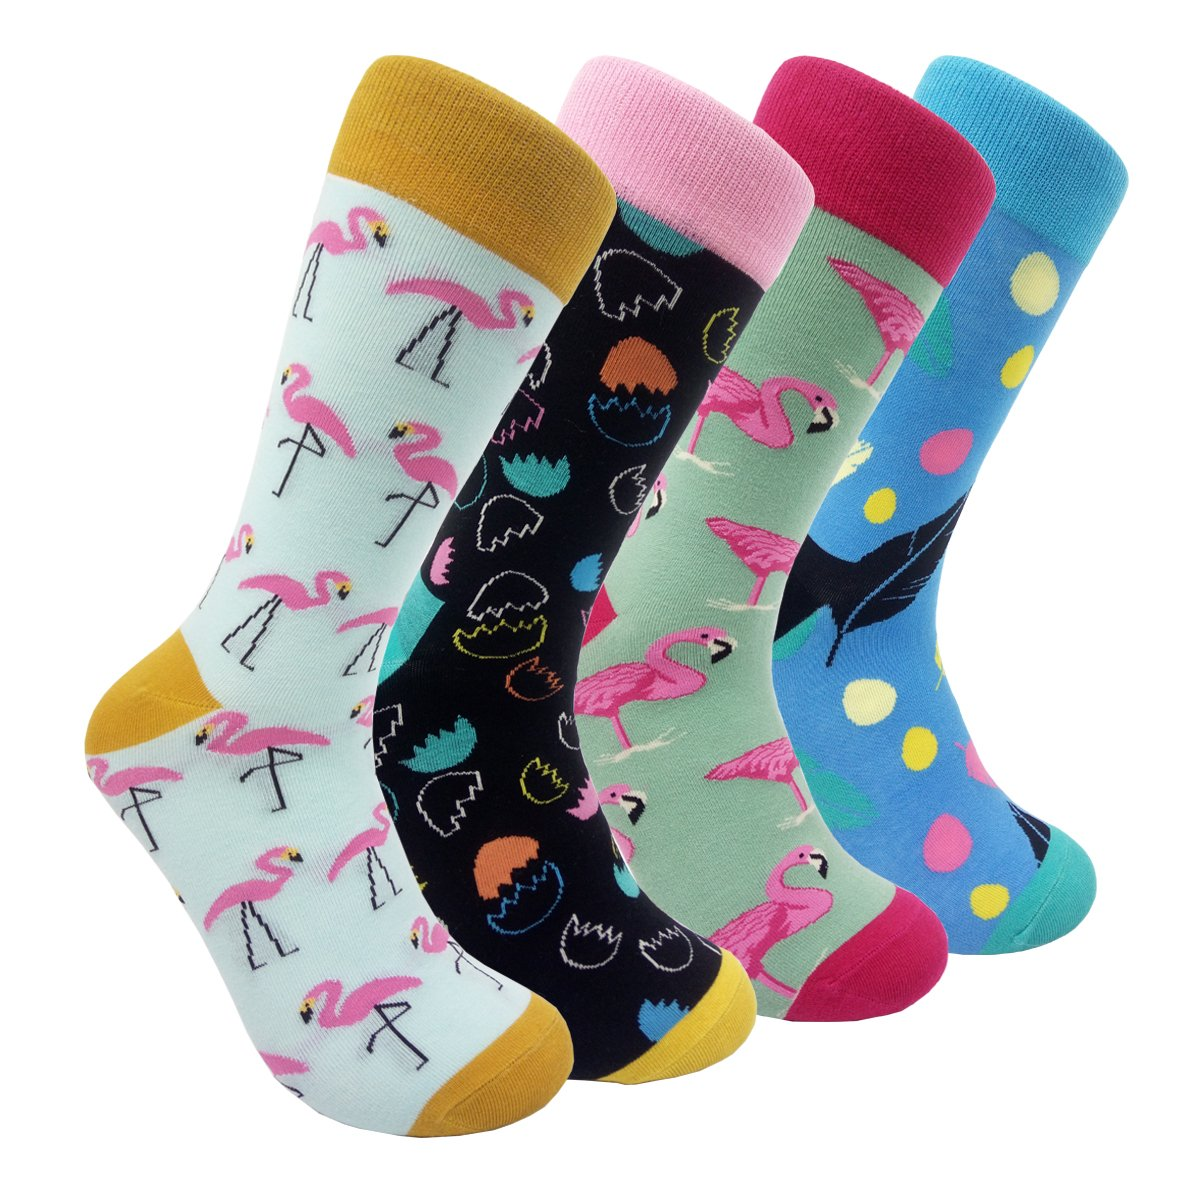 Funny Mens Dress Socks Flamingo - HSELL Colorful Novelty Animal Patterned Fun Crew Socks (Flamingo - 4 Pairs)